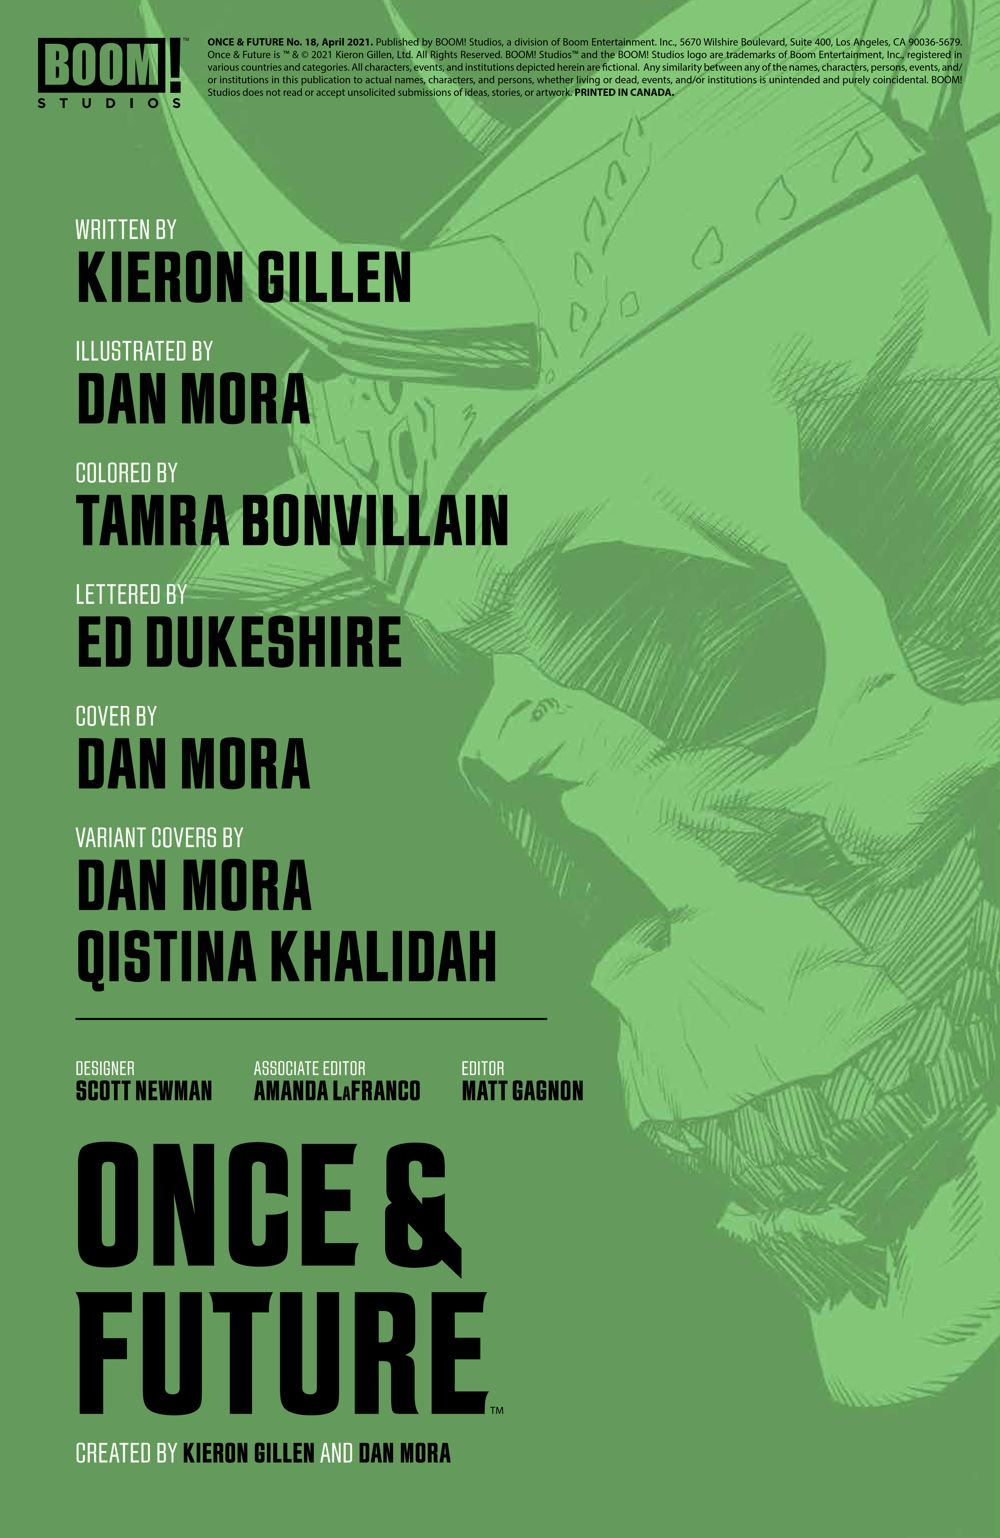 OnceFuture_018_PRESS_2 ComicList Previews: ONCE AND FUTURE #18